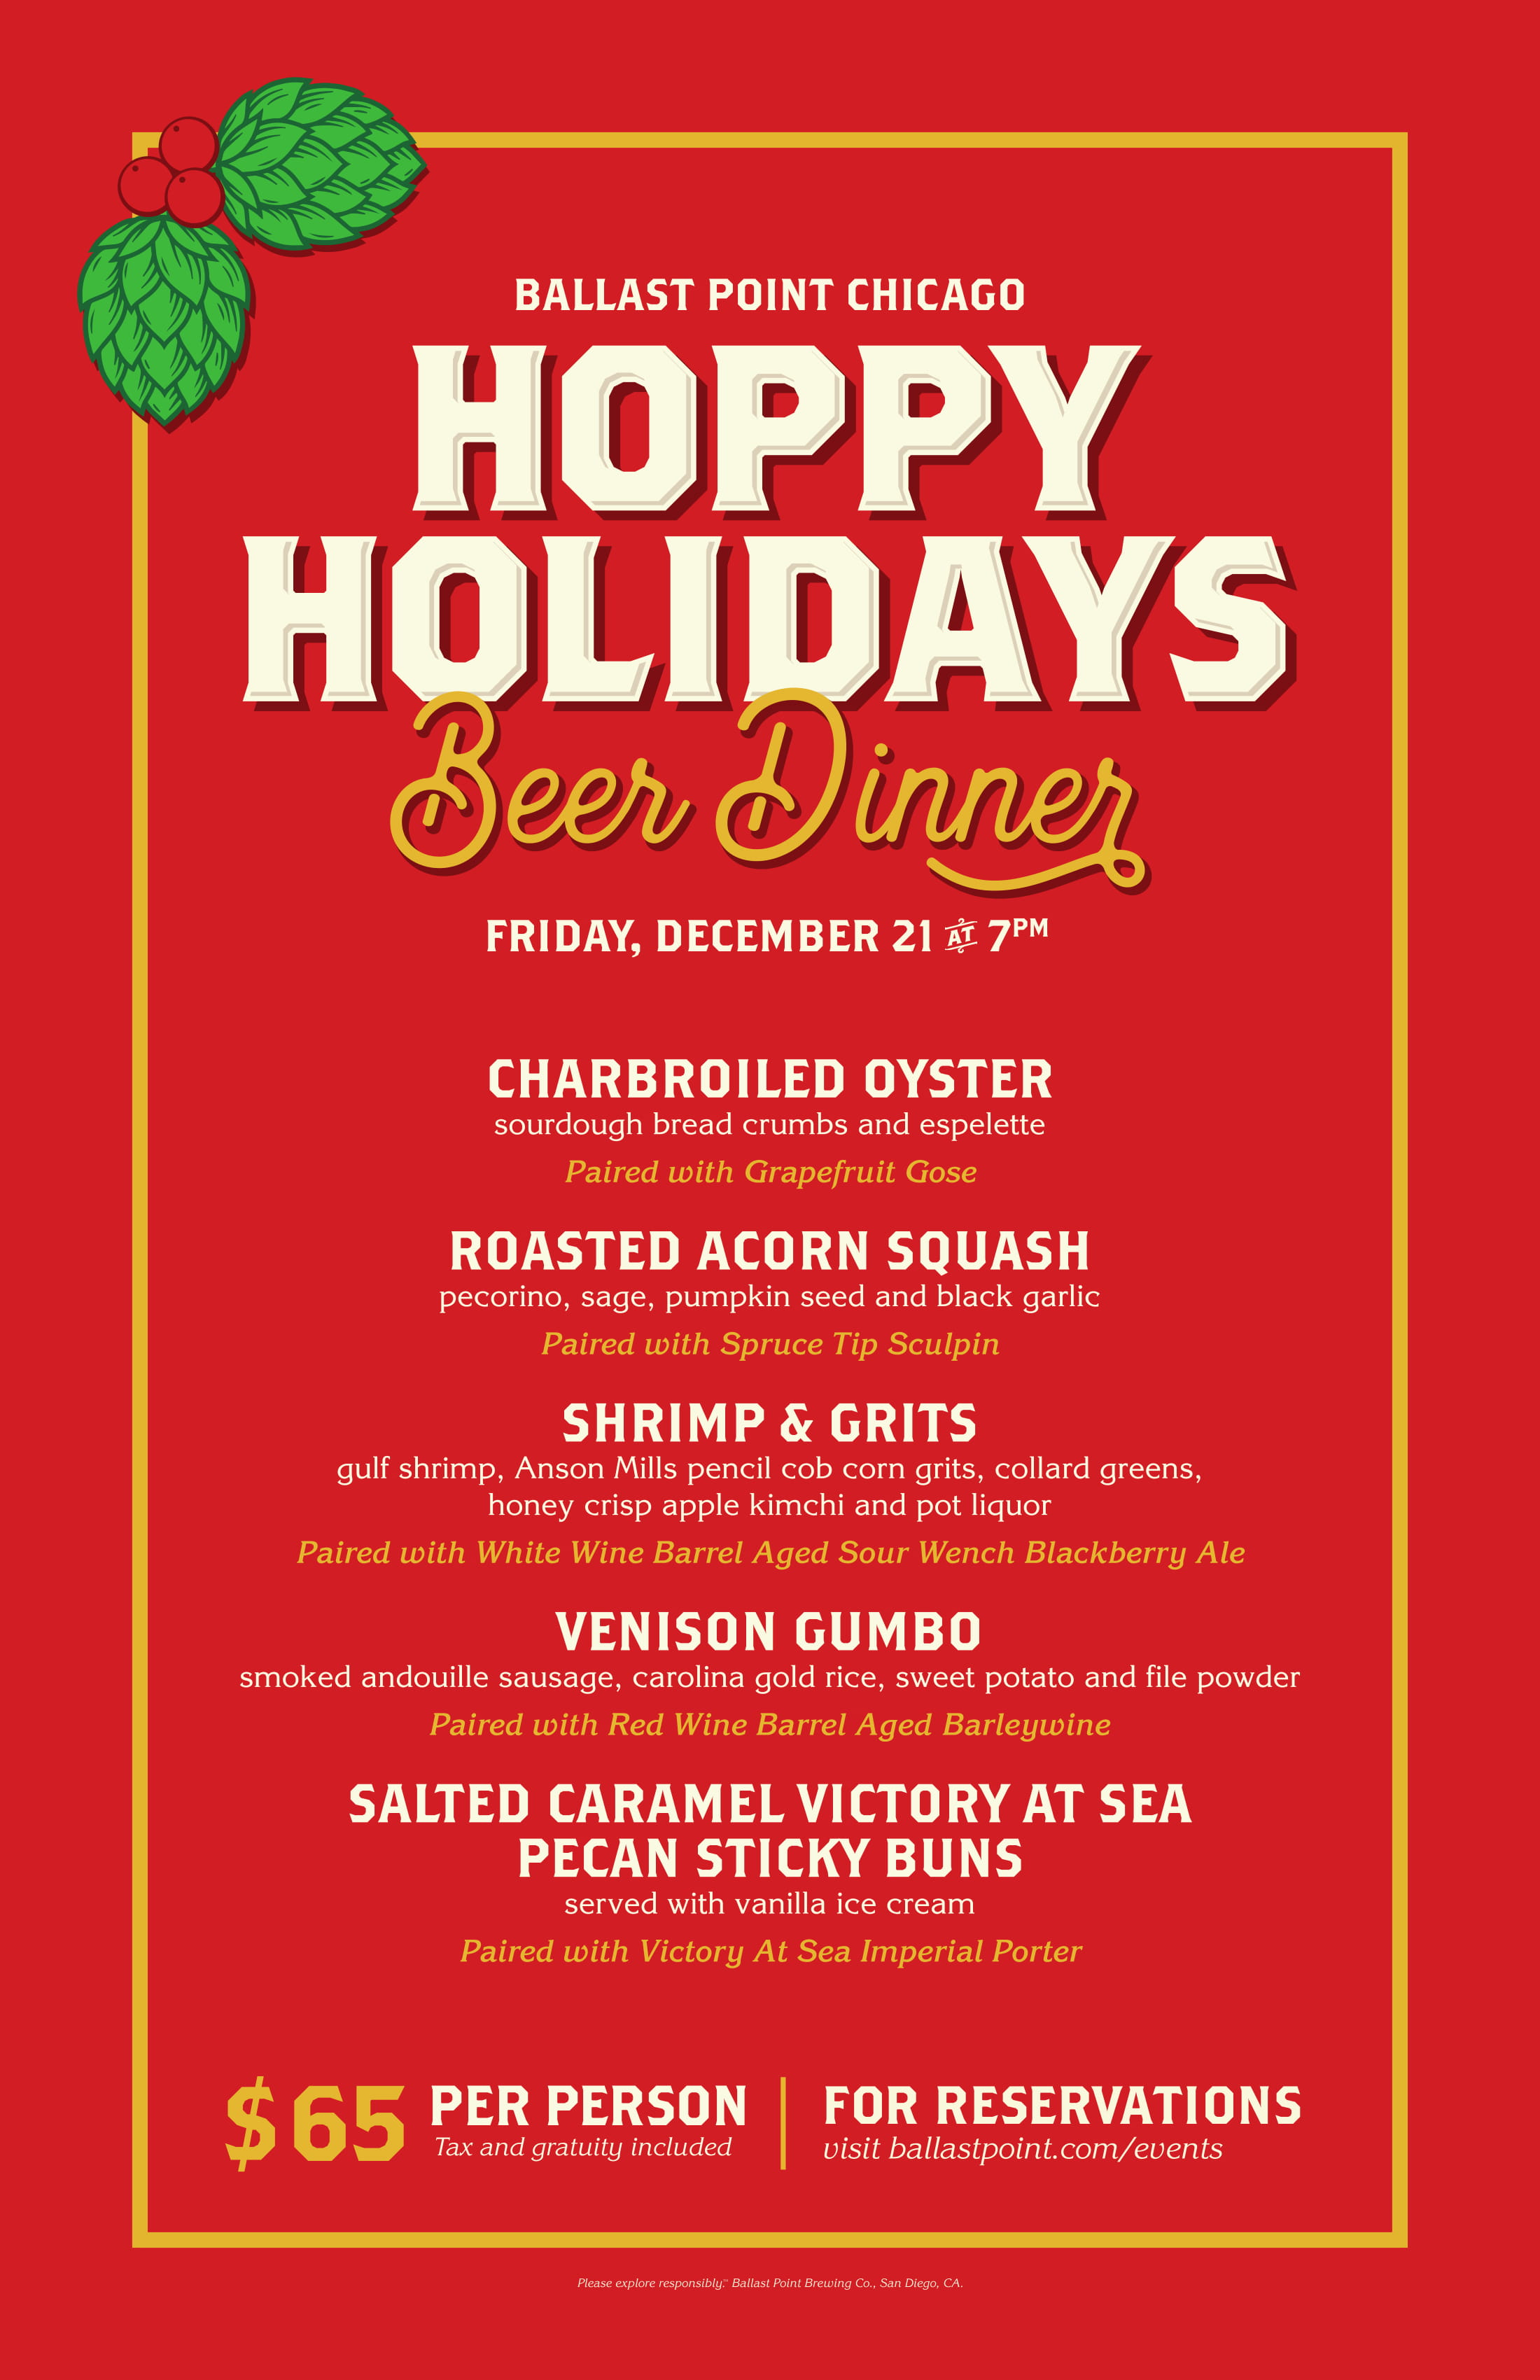 Ballast Point Chicago - Hoppy Holidays Beer Dinner